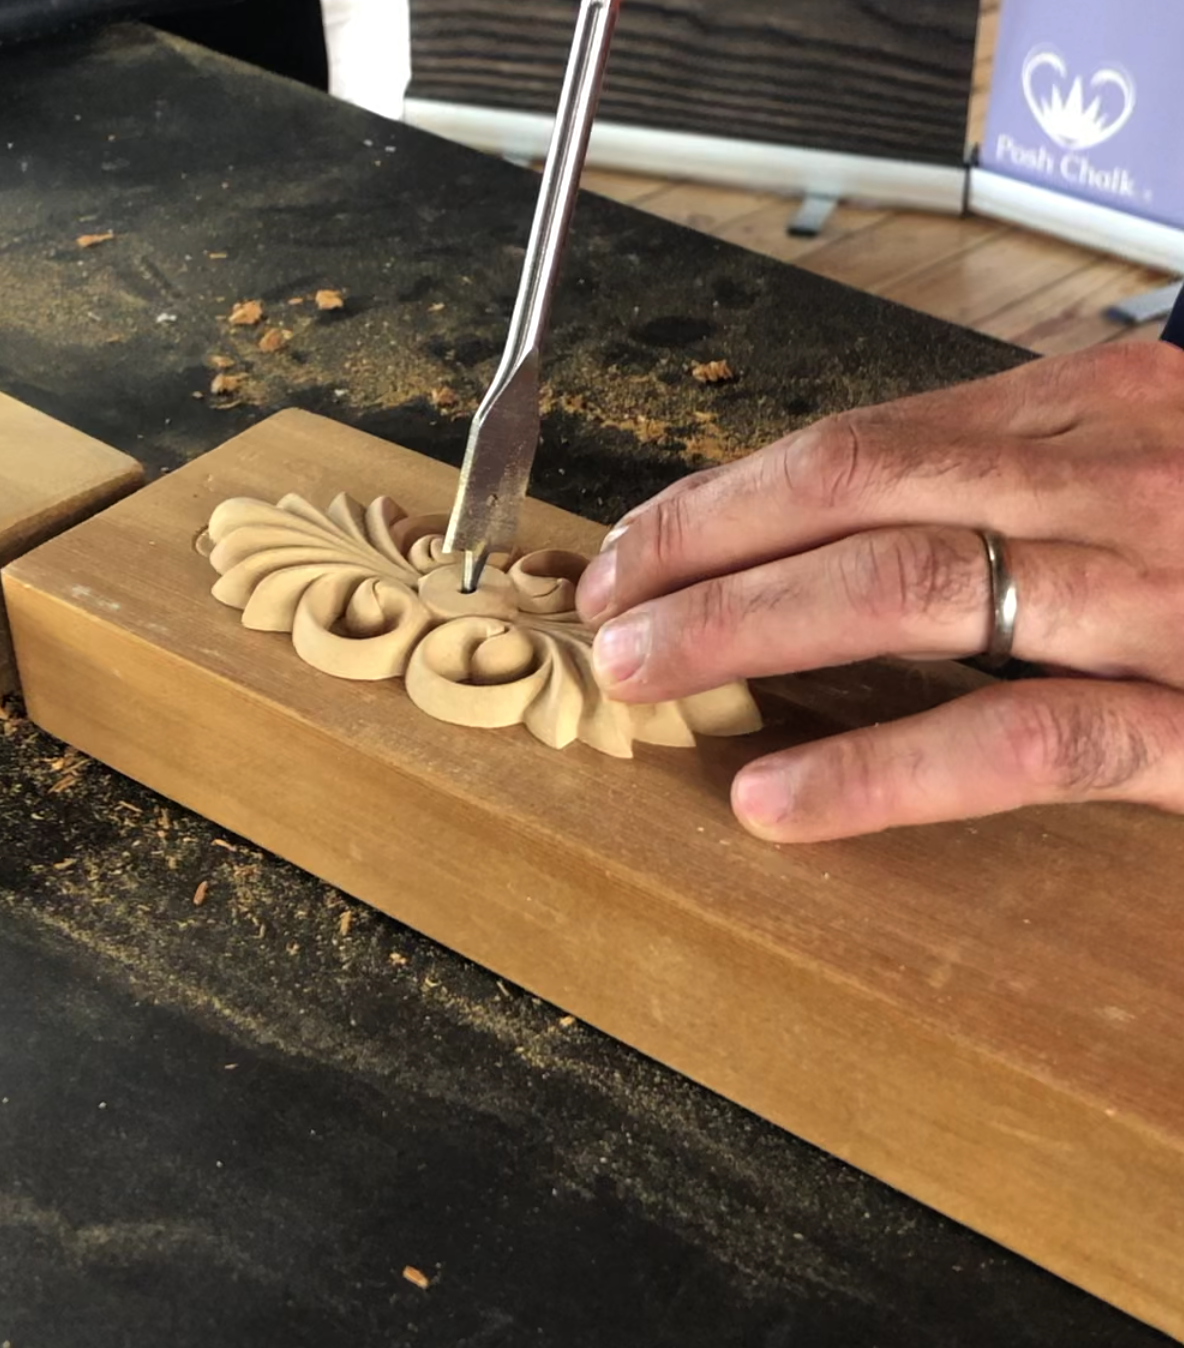 X1008 WoodUbend mouldings being drilled with a flat drill bit on a block of wood as a part of a crafting project.